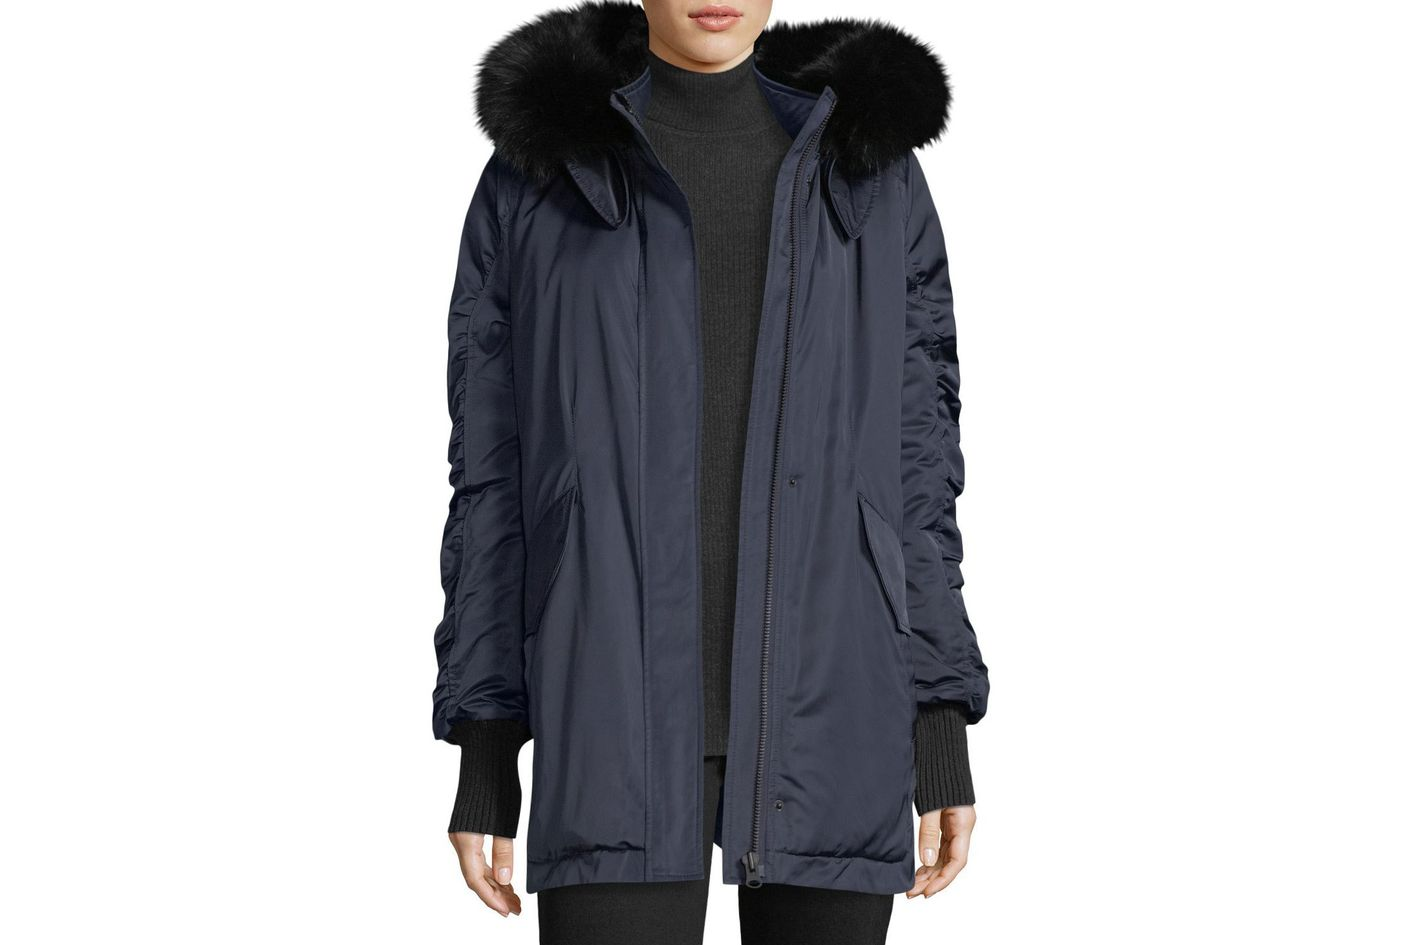 Derek Lam 10 Crosby Satin Ruched-Sleeves Anorak Jacket With Fox Fur